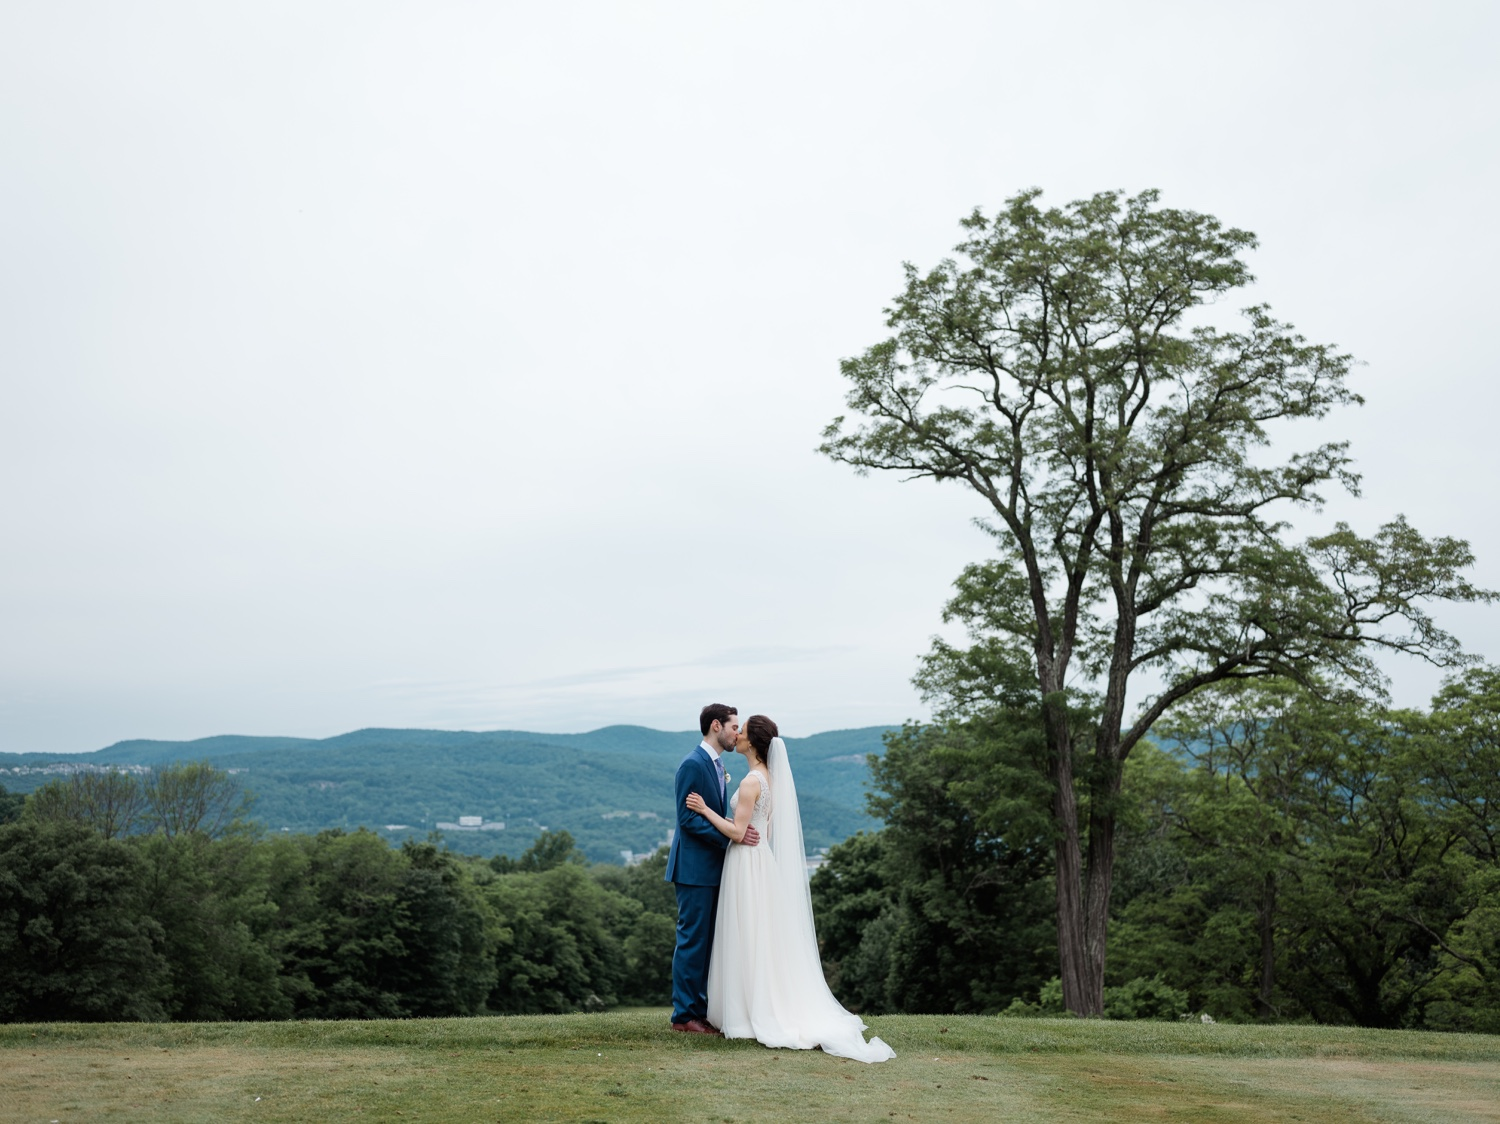 The Garrison, The Garrison Wedding, The Garrison Wedding Photos, Hudson Valley Wedding Photographer, Catskills Wedding Photographer, Best Hudson Valley Wedding Photographer, Lana Zakharina Wedding Dress,